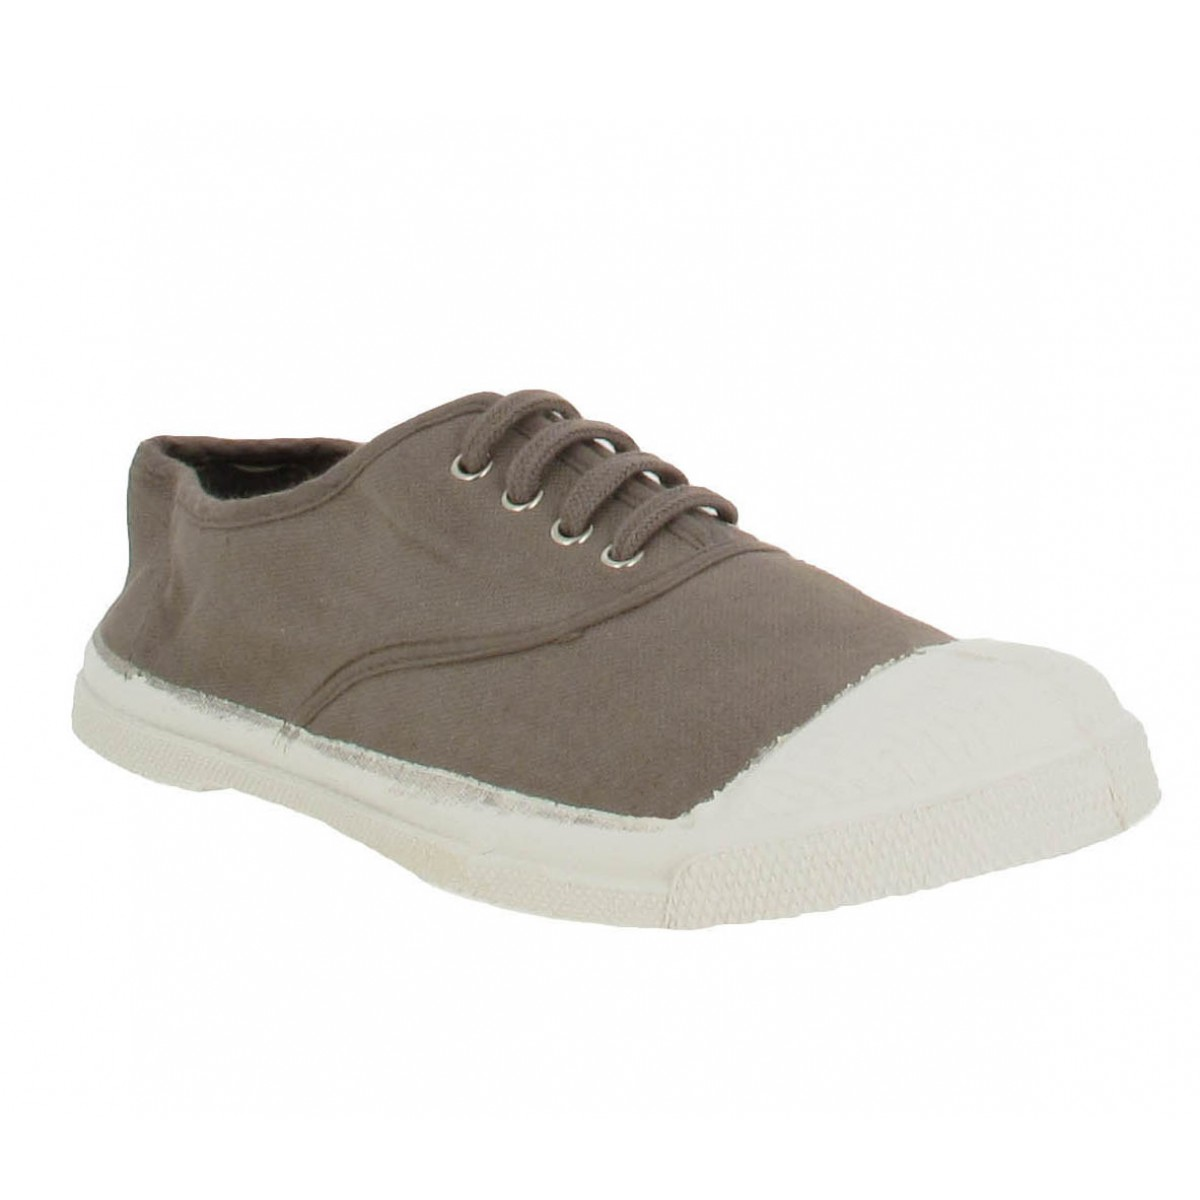 Baskets BENSIMON Lacet toile Femme Taupe